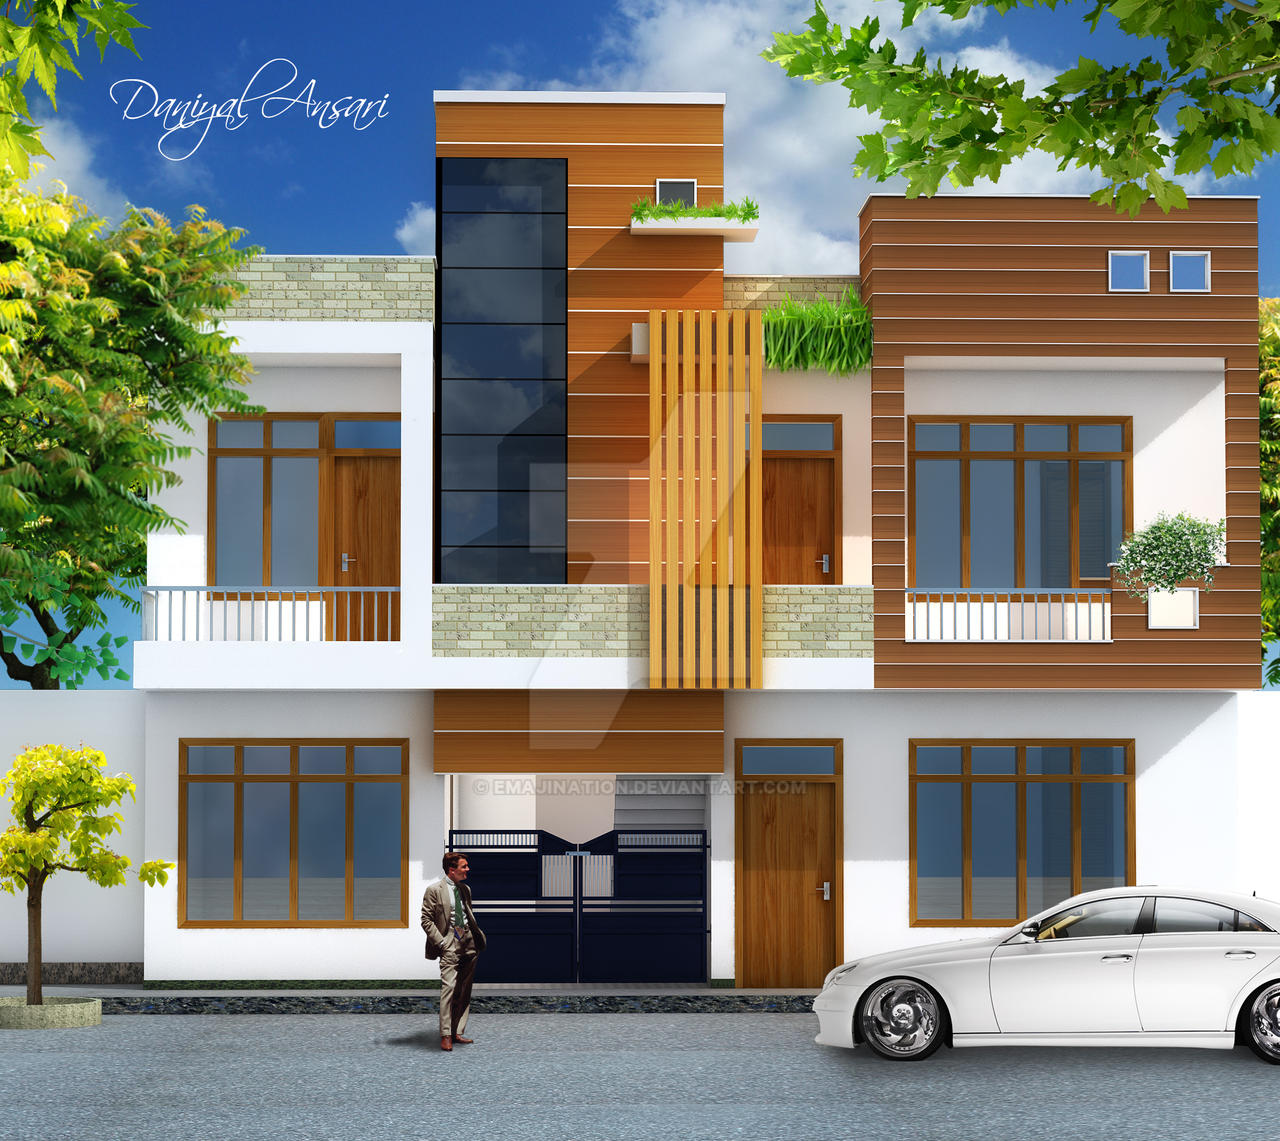 Dream Home Front View By Emajination On DeviantArt